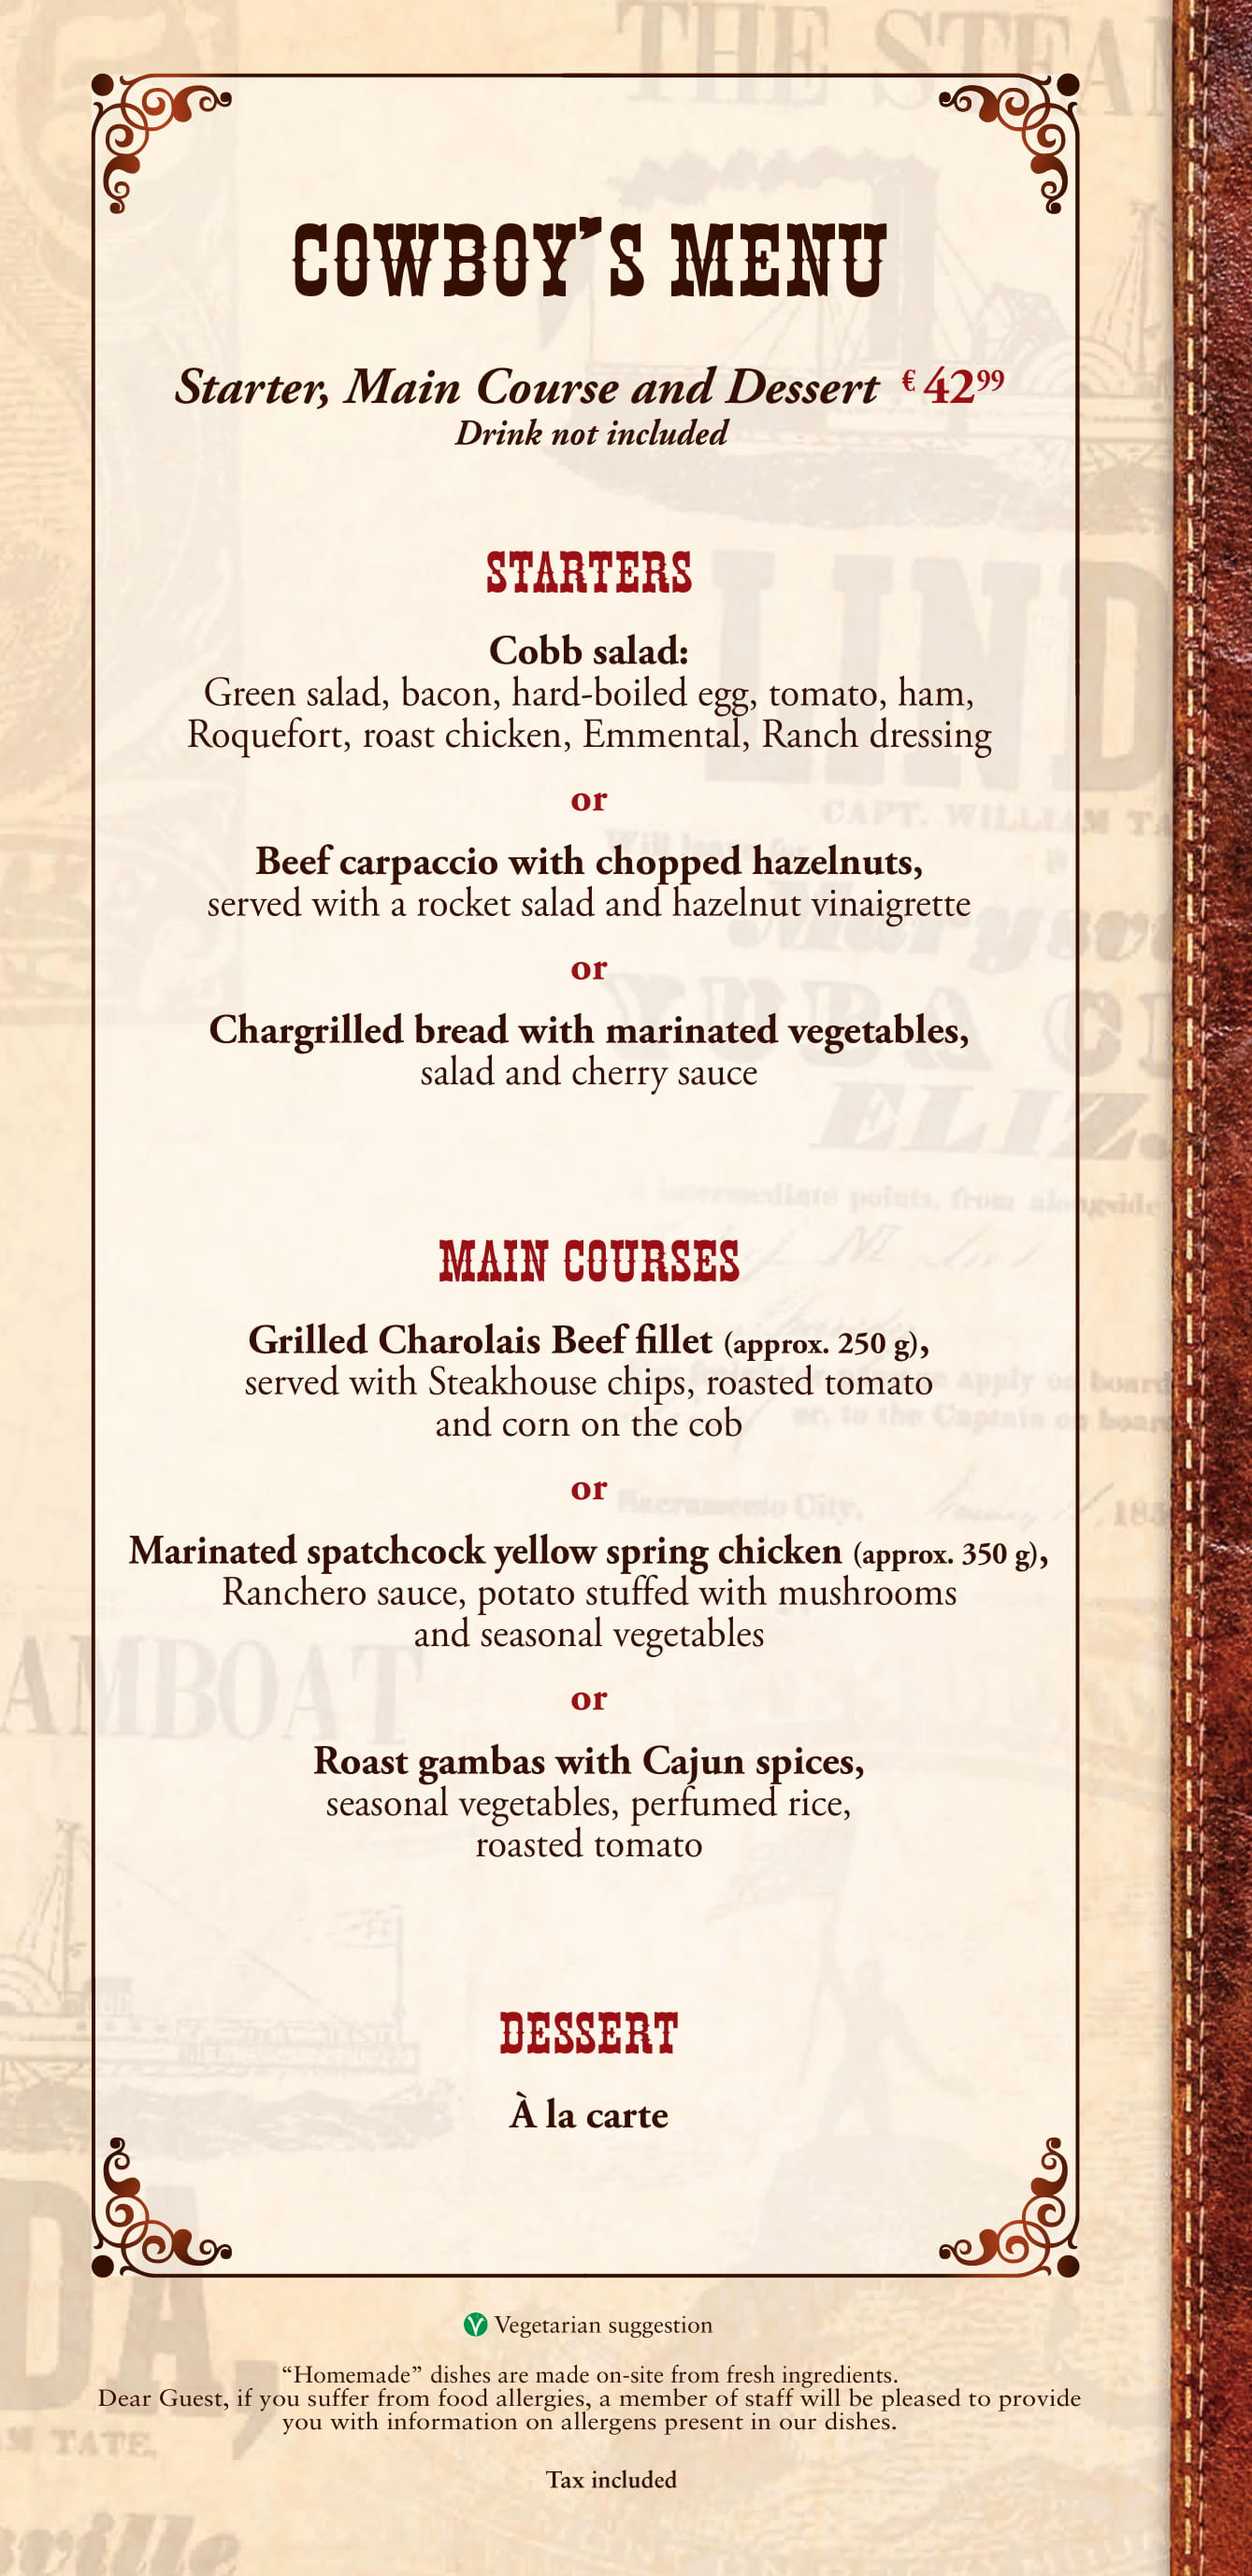 Silver Spur Steakhouse - Cowboy Set Menu at Disneyland Paris